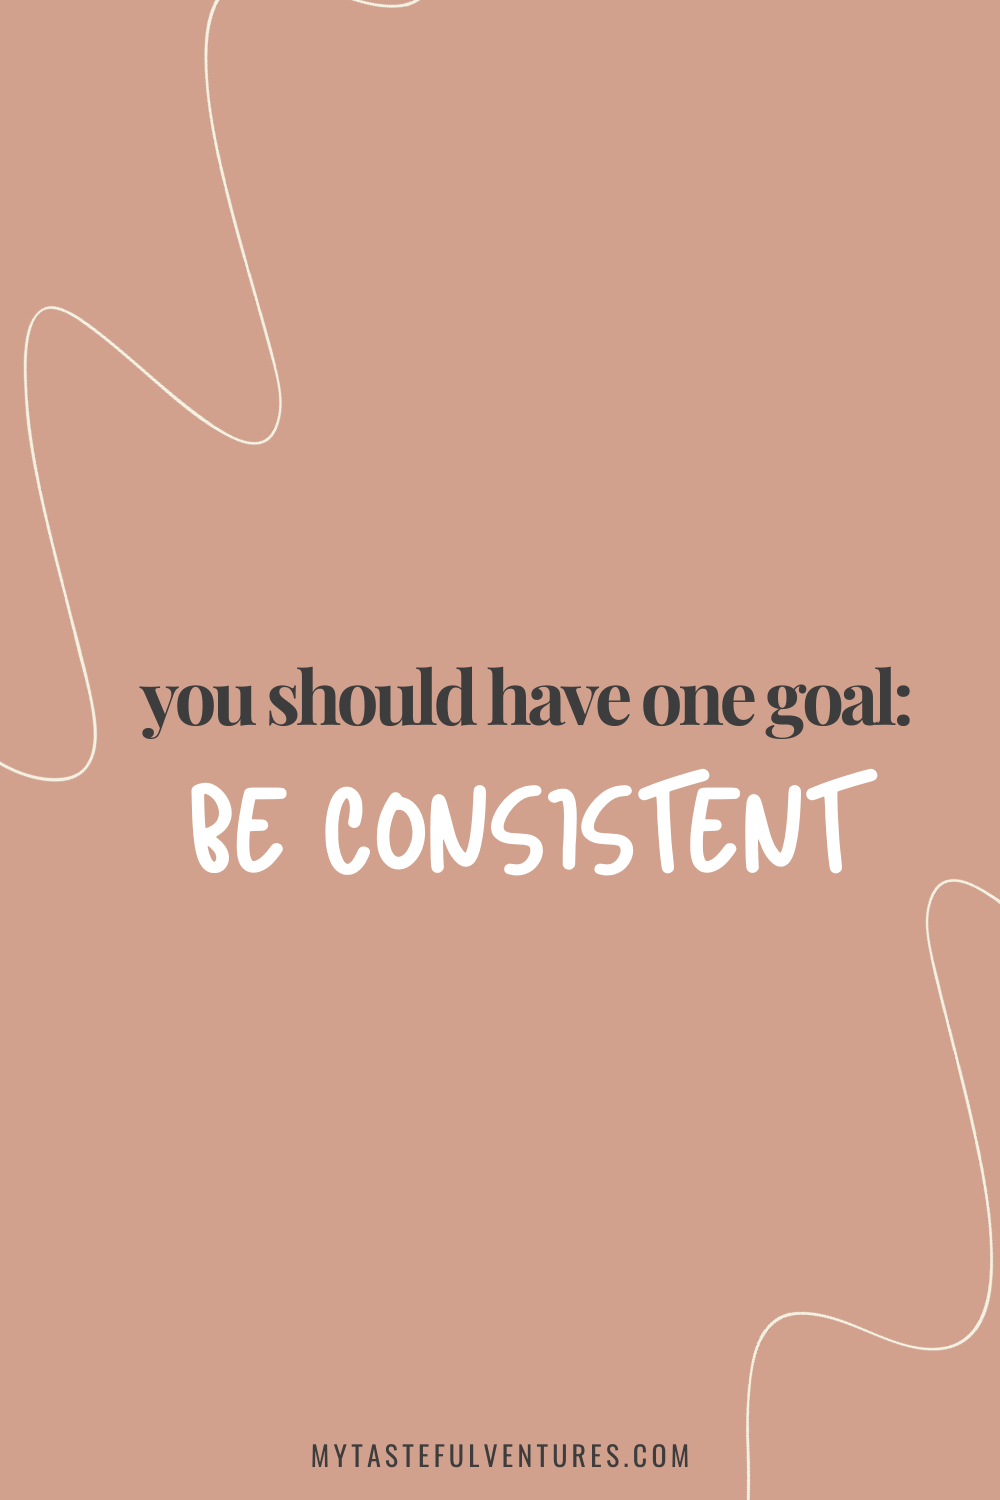 Your Main Goal Is Being Consistent Consistency Quotes Sales Motivation Quotes College Motivation Quotes